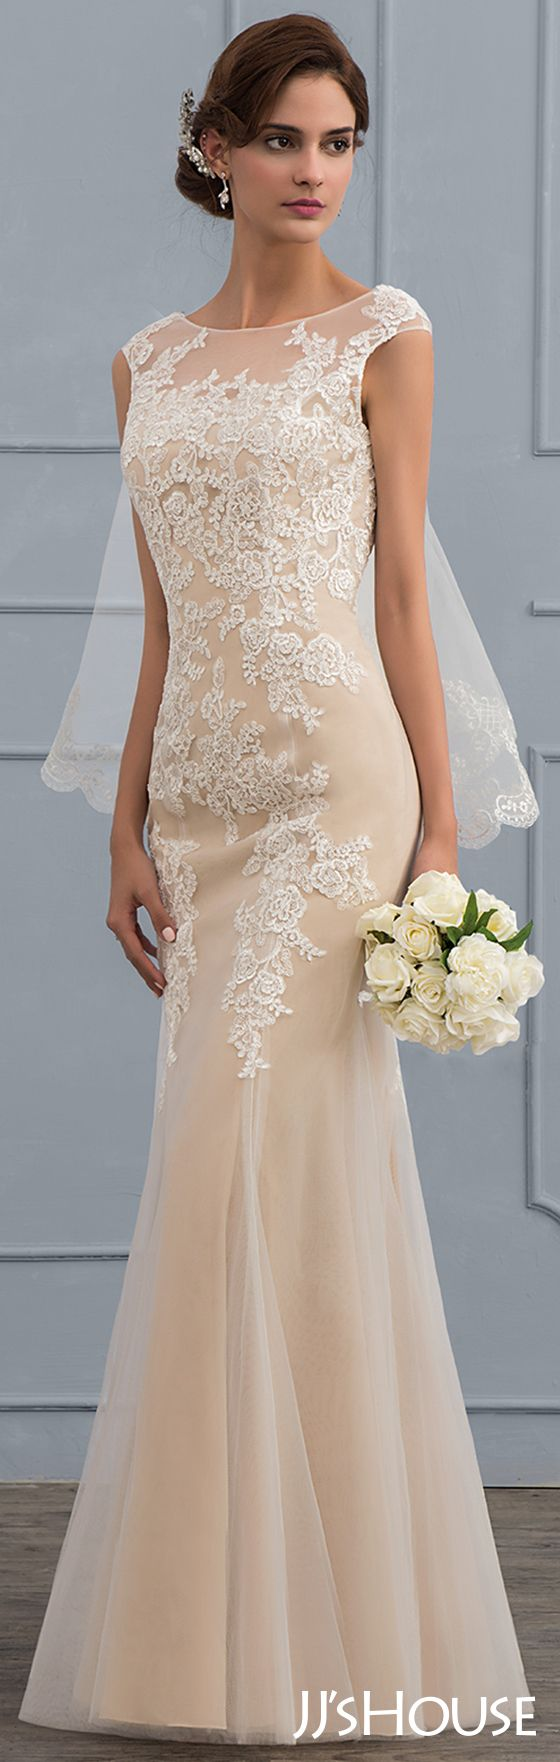 709 Best Images About JJsHouse Wedding Dresses On Pinterest